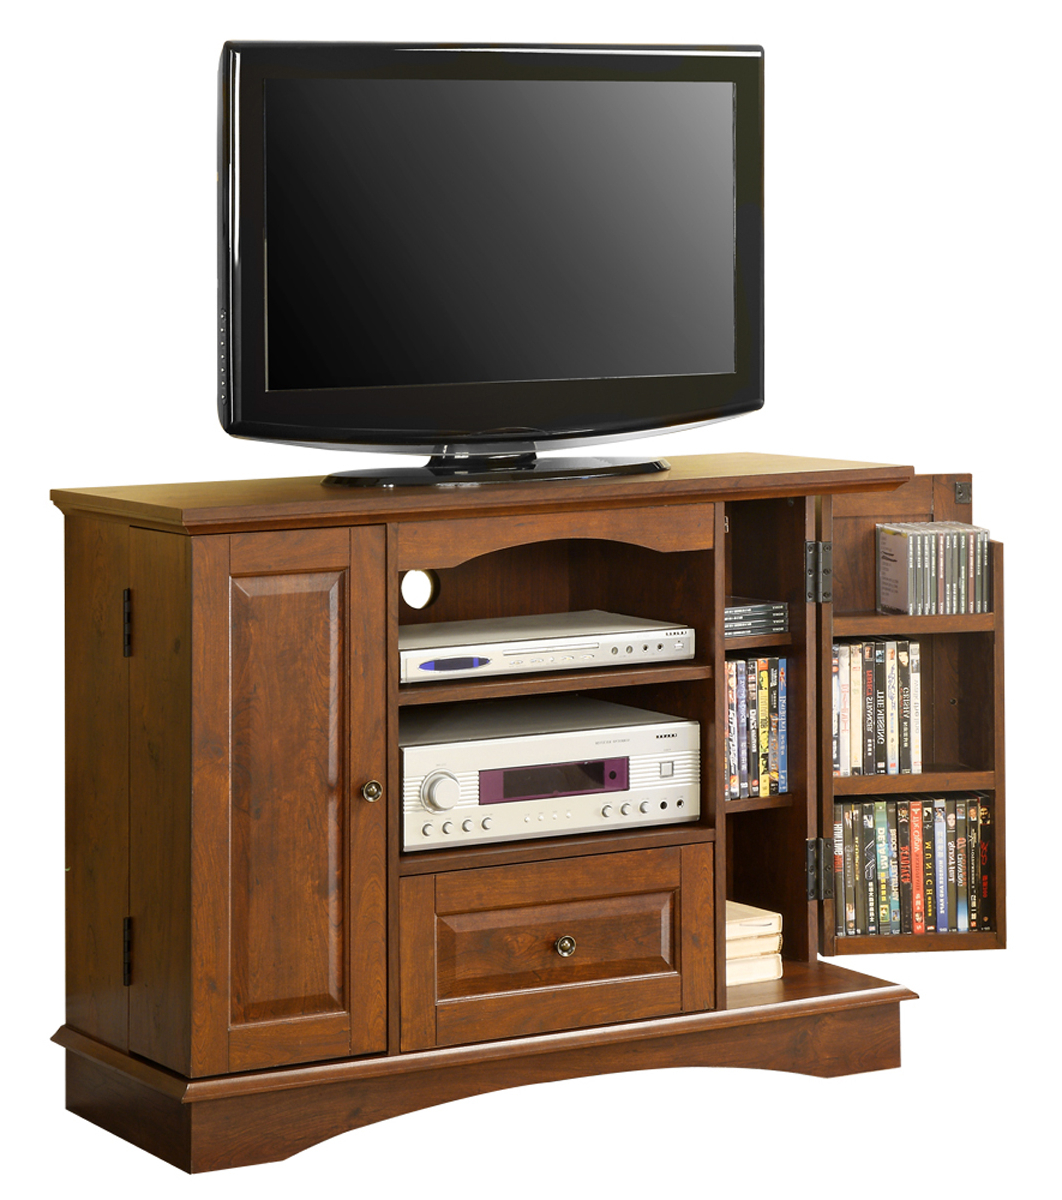 42 Inch Wood Tv Stand With Media Storage In Tv Stands Intended For Horizontal Or Vertical Storage Shelf Tv Stands (View 6 of 20)